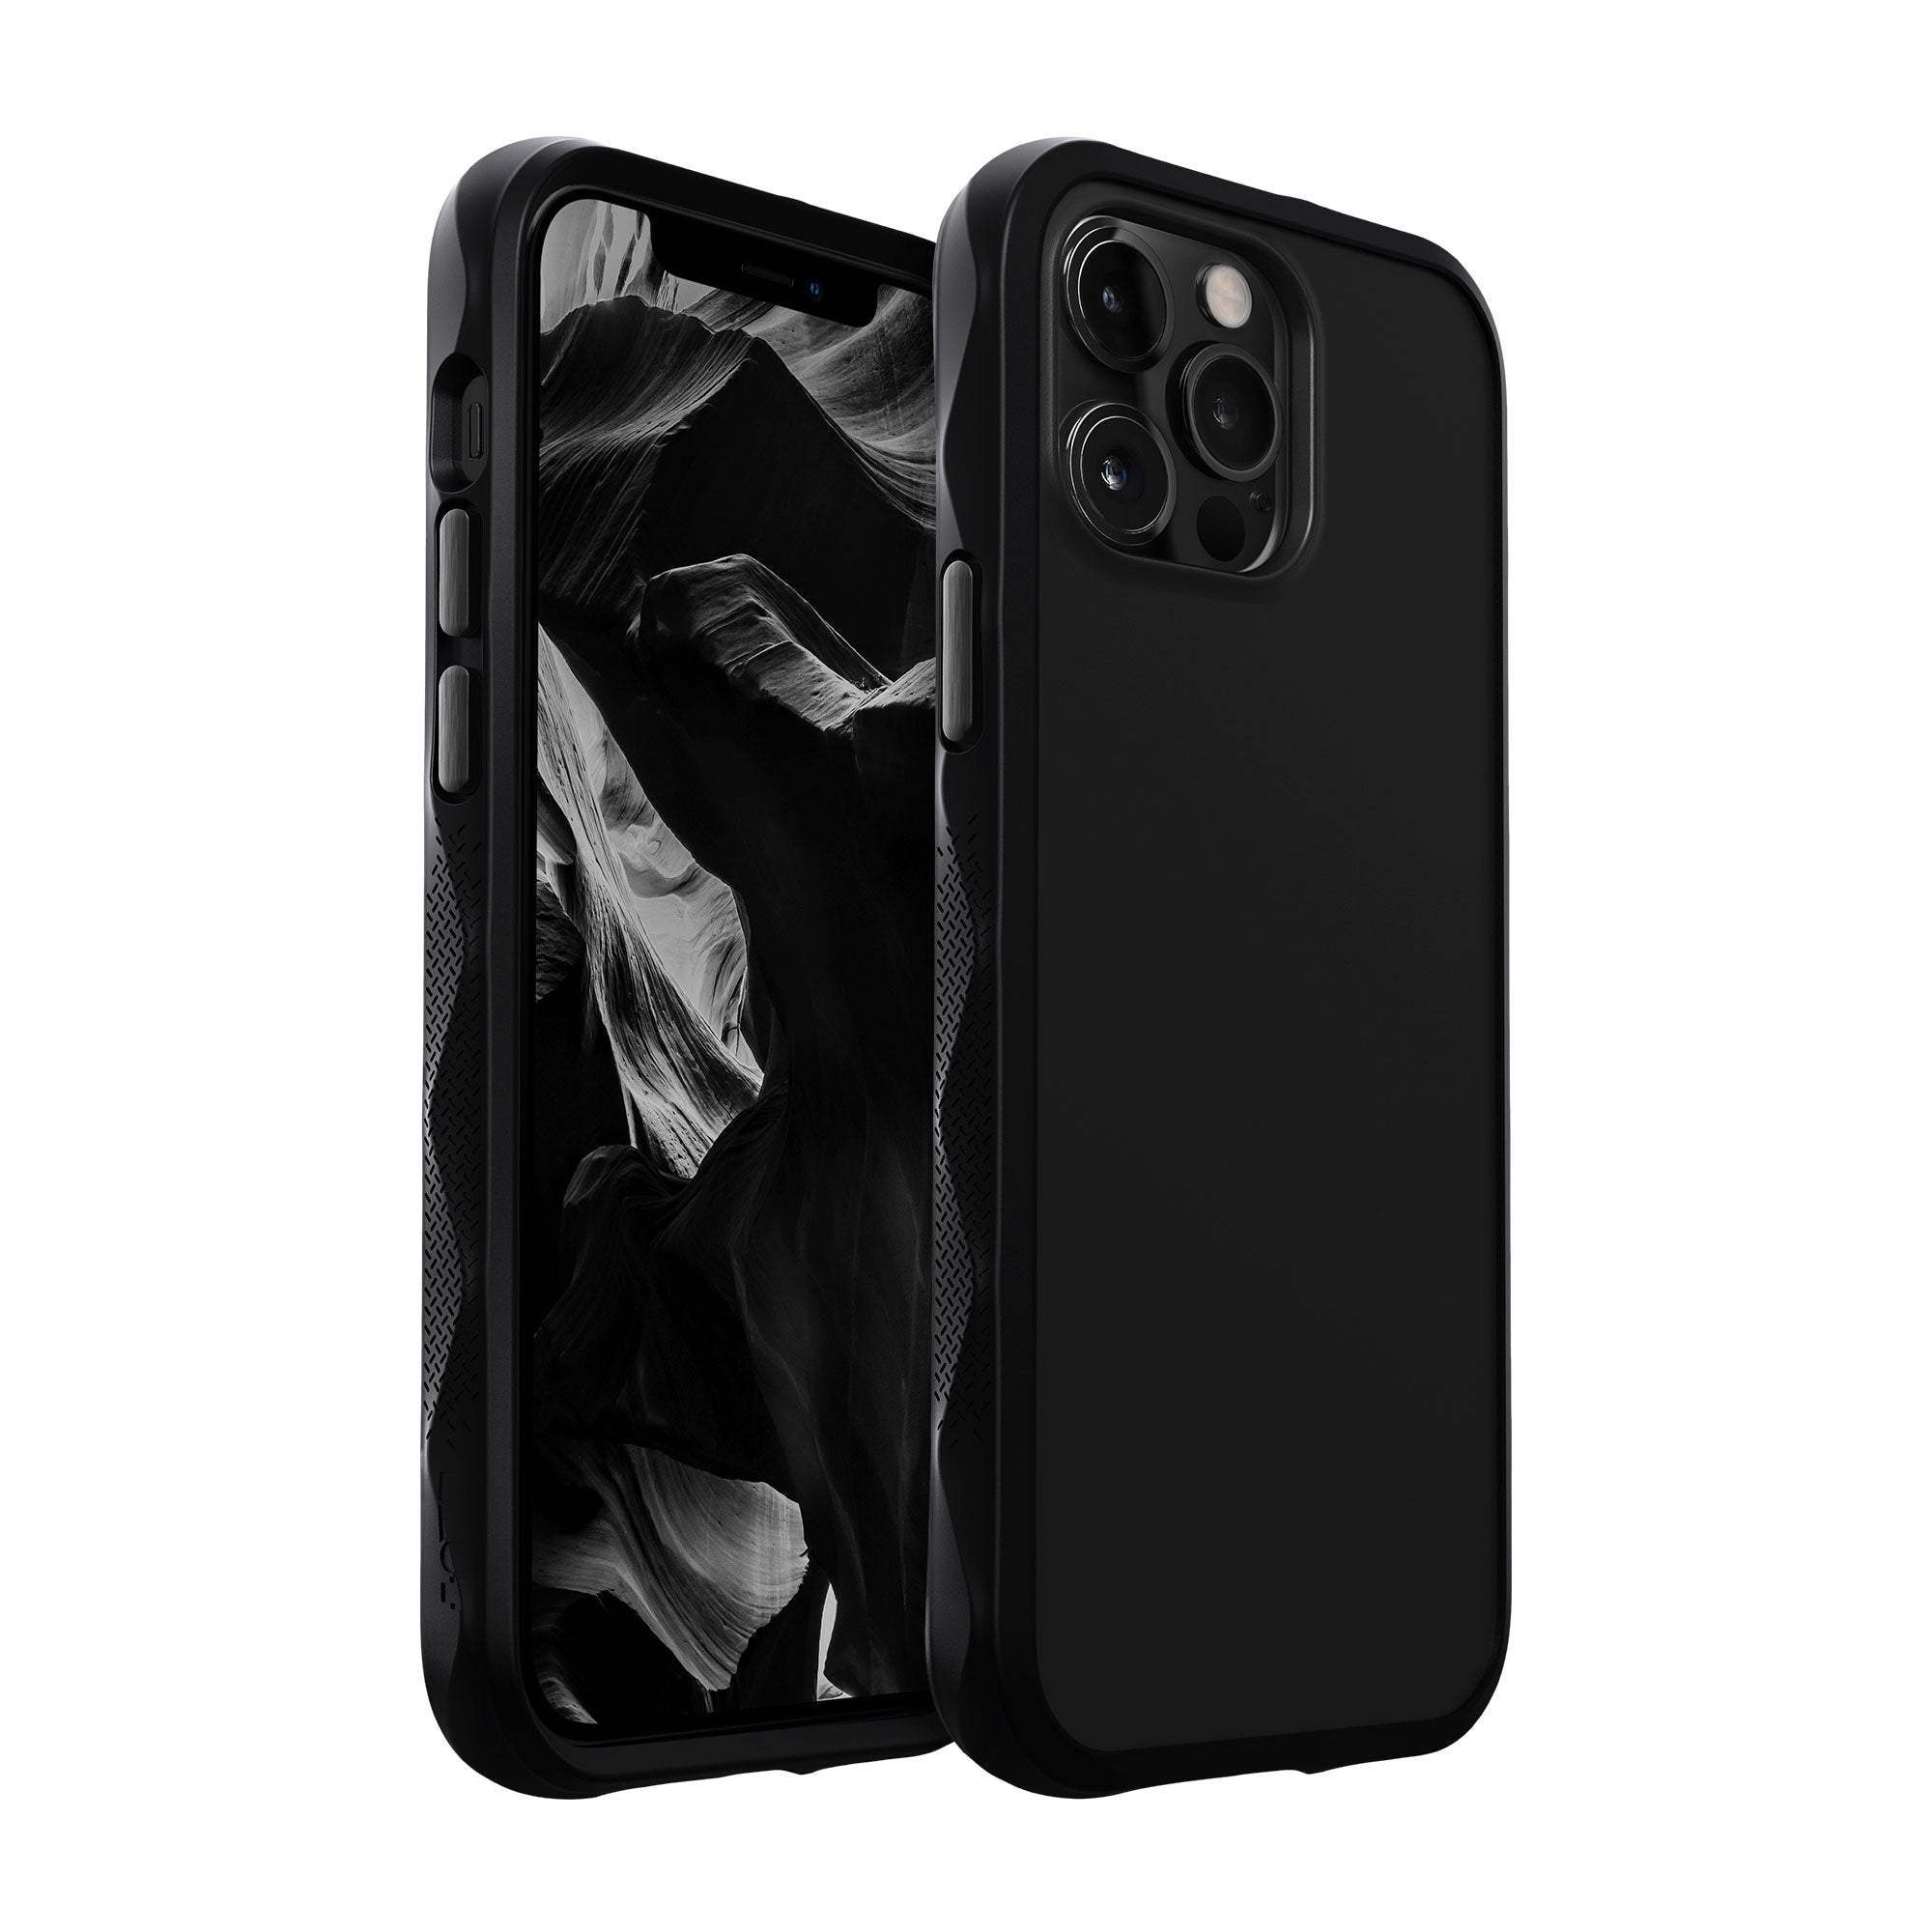 CRYSTAL MATTER (IMPKT) 2.0 case for iPhone 12 series